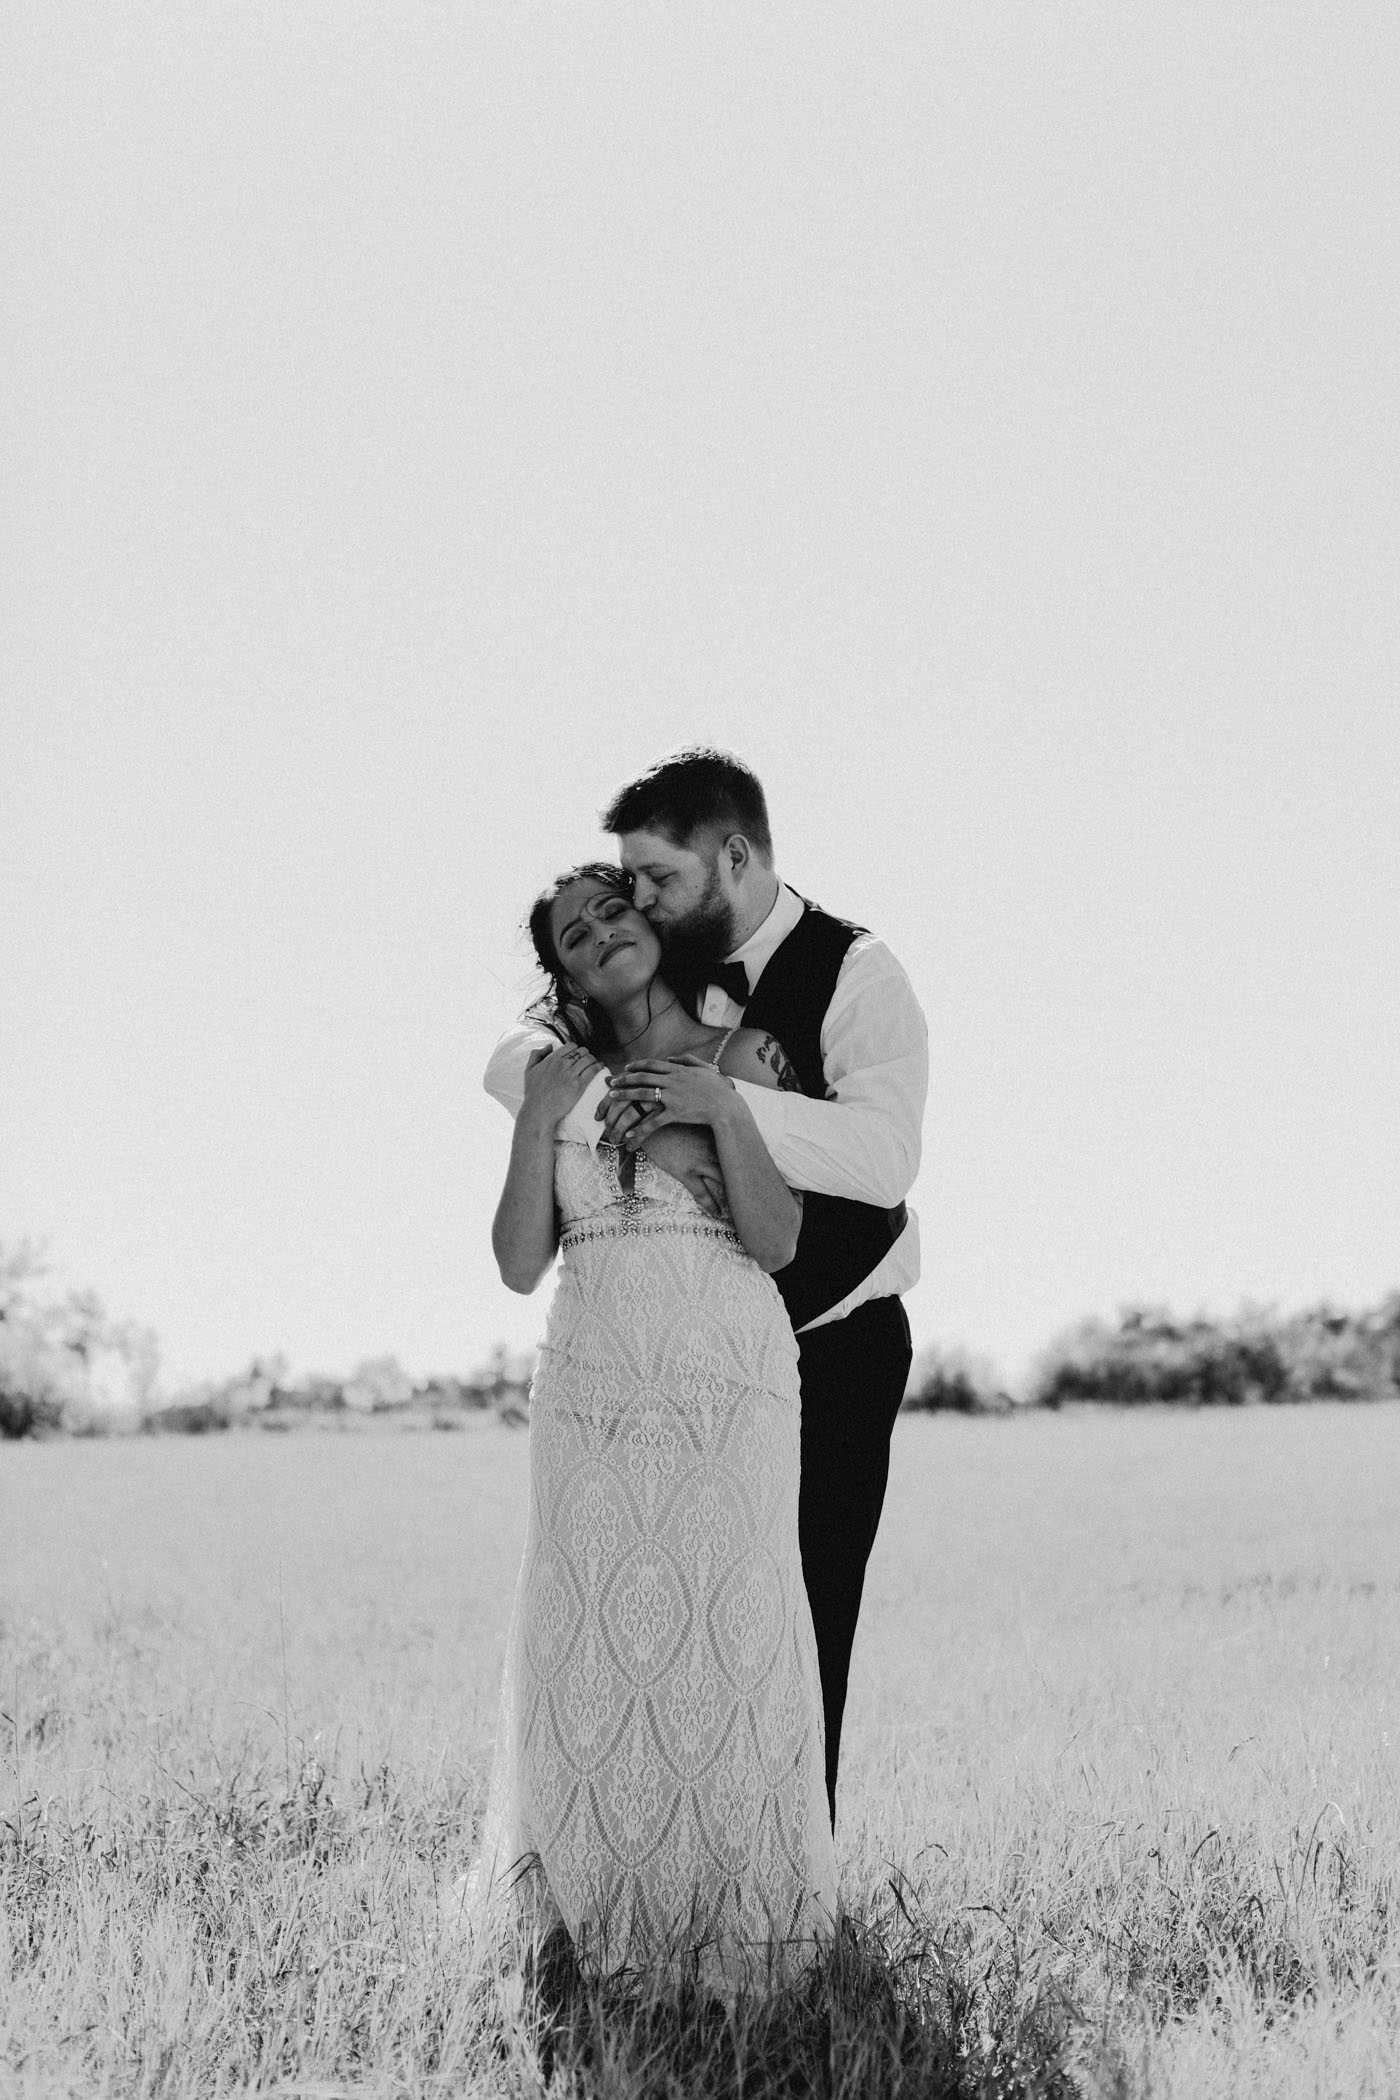 Bride and groom standing in an open field and hugging each other